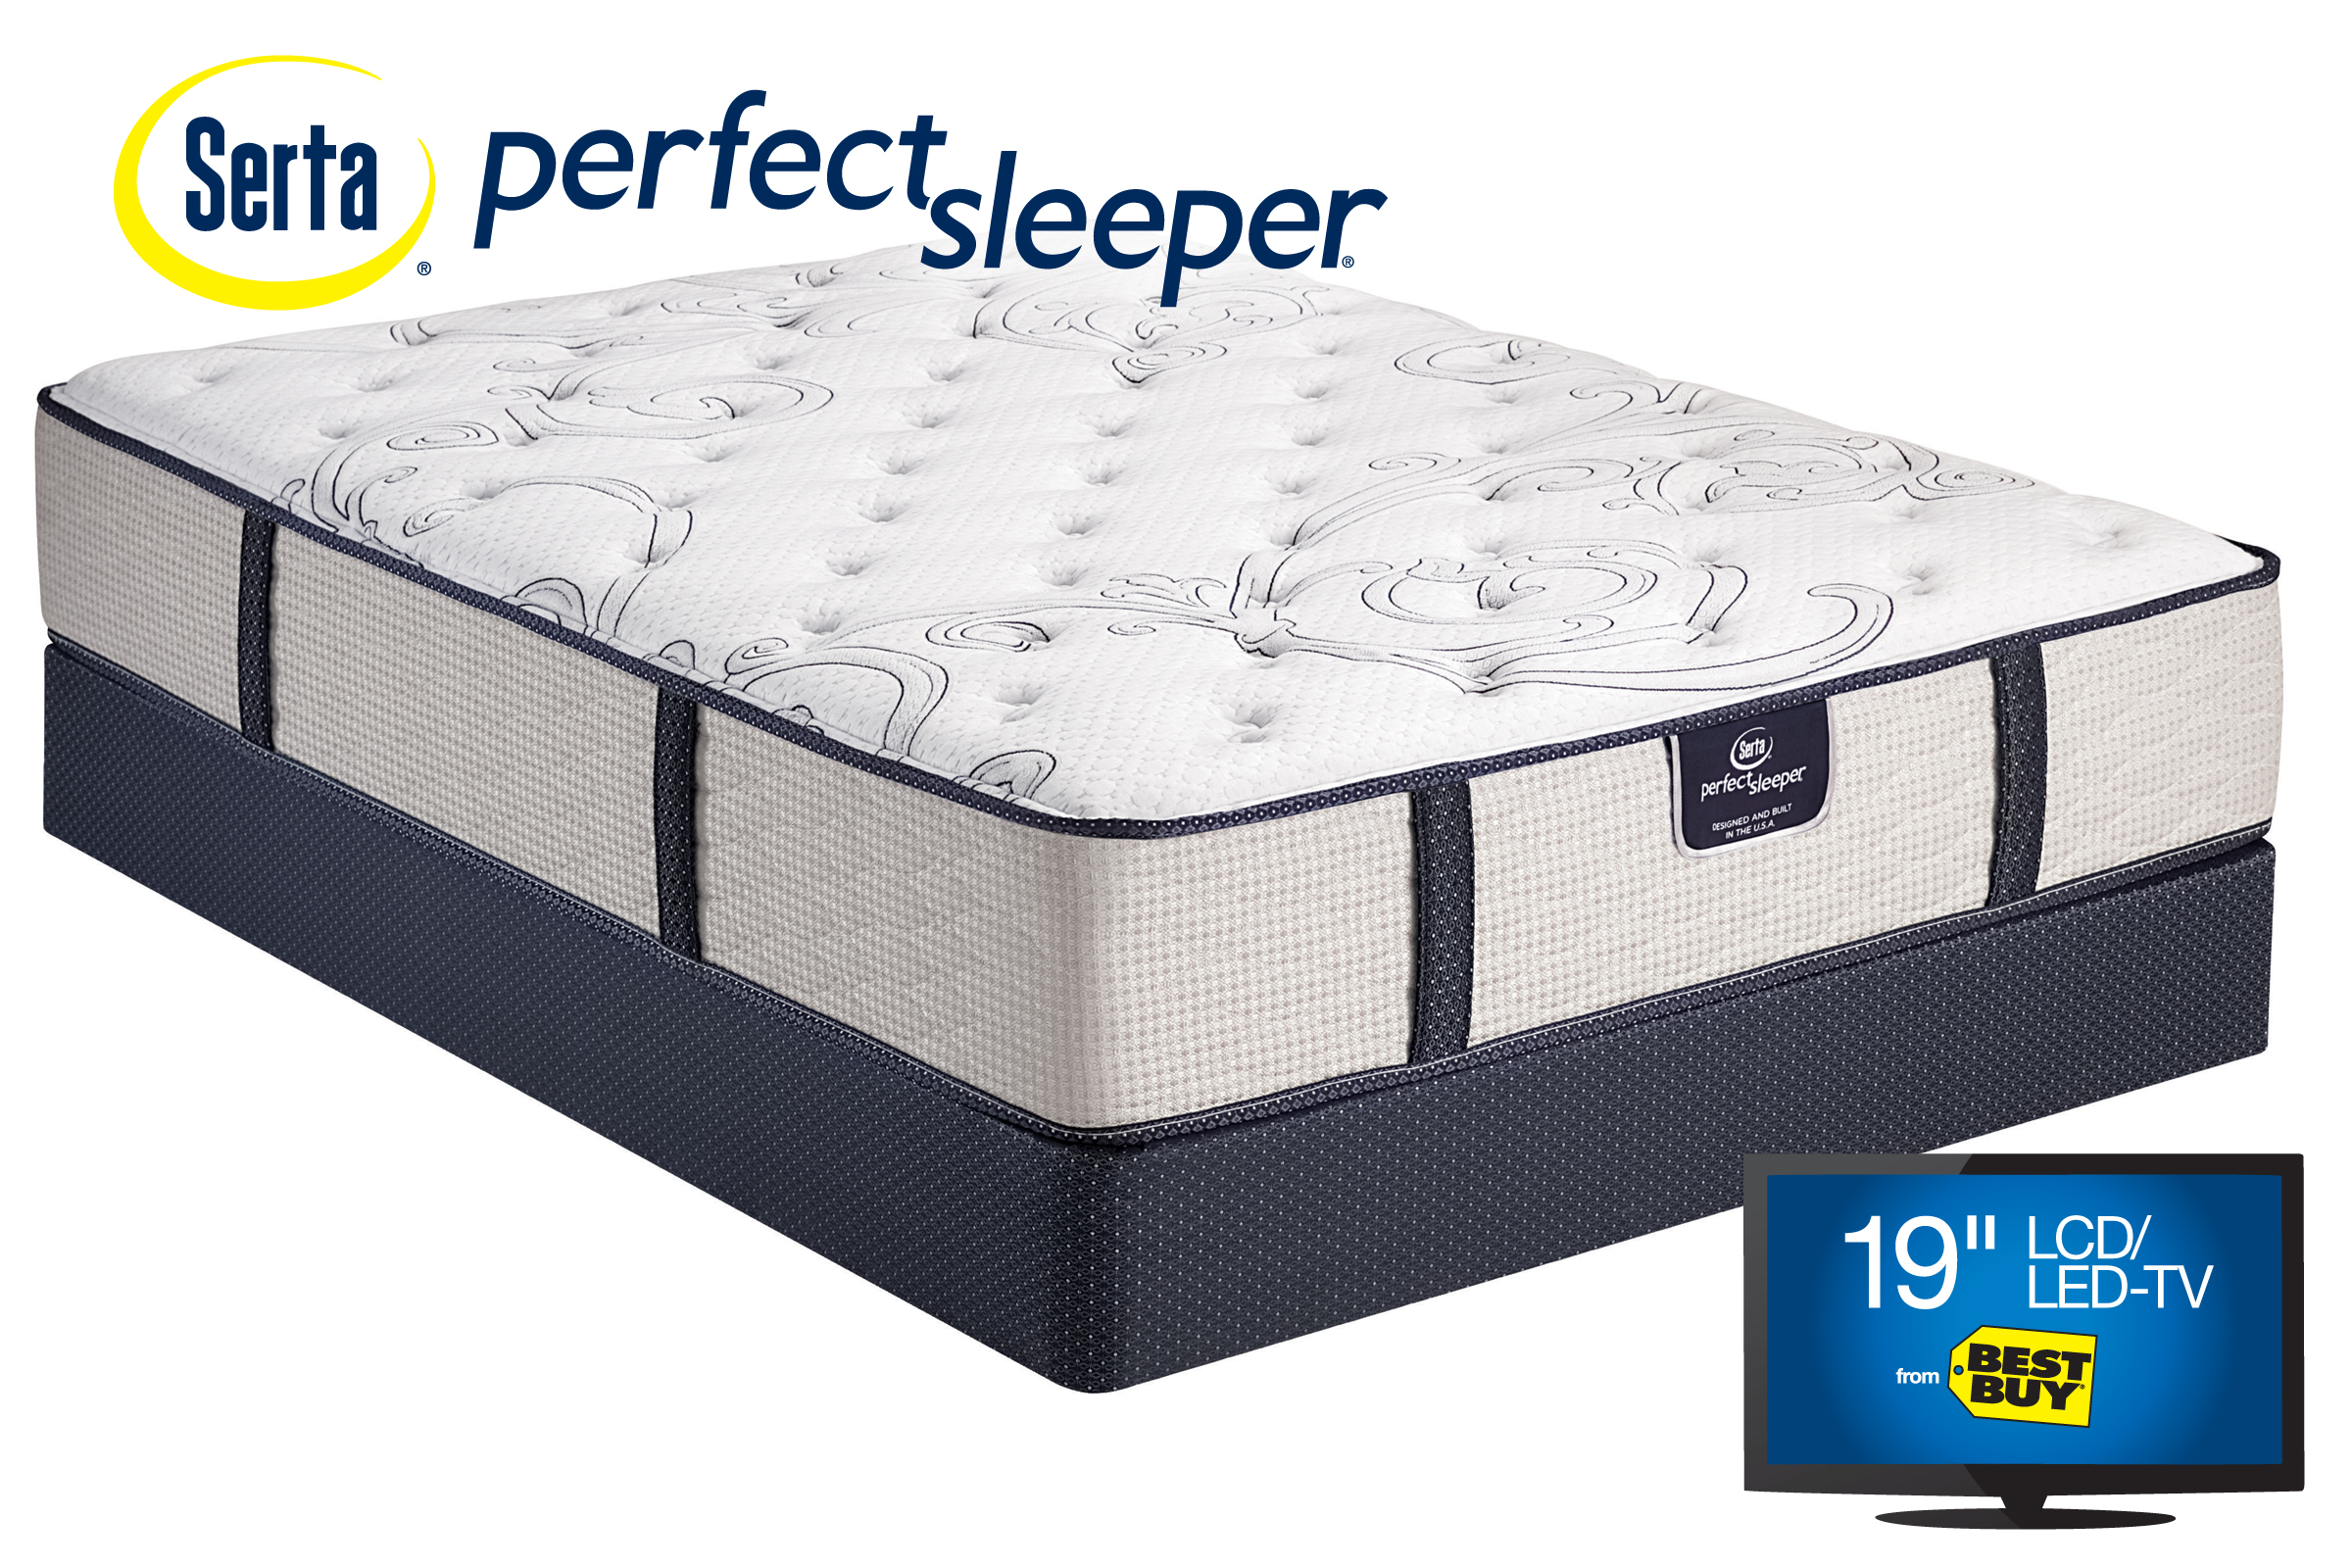 furniture store willey top jsp euro rcwilley mackay view serta perfect sleeper rc queen mattress mattresses